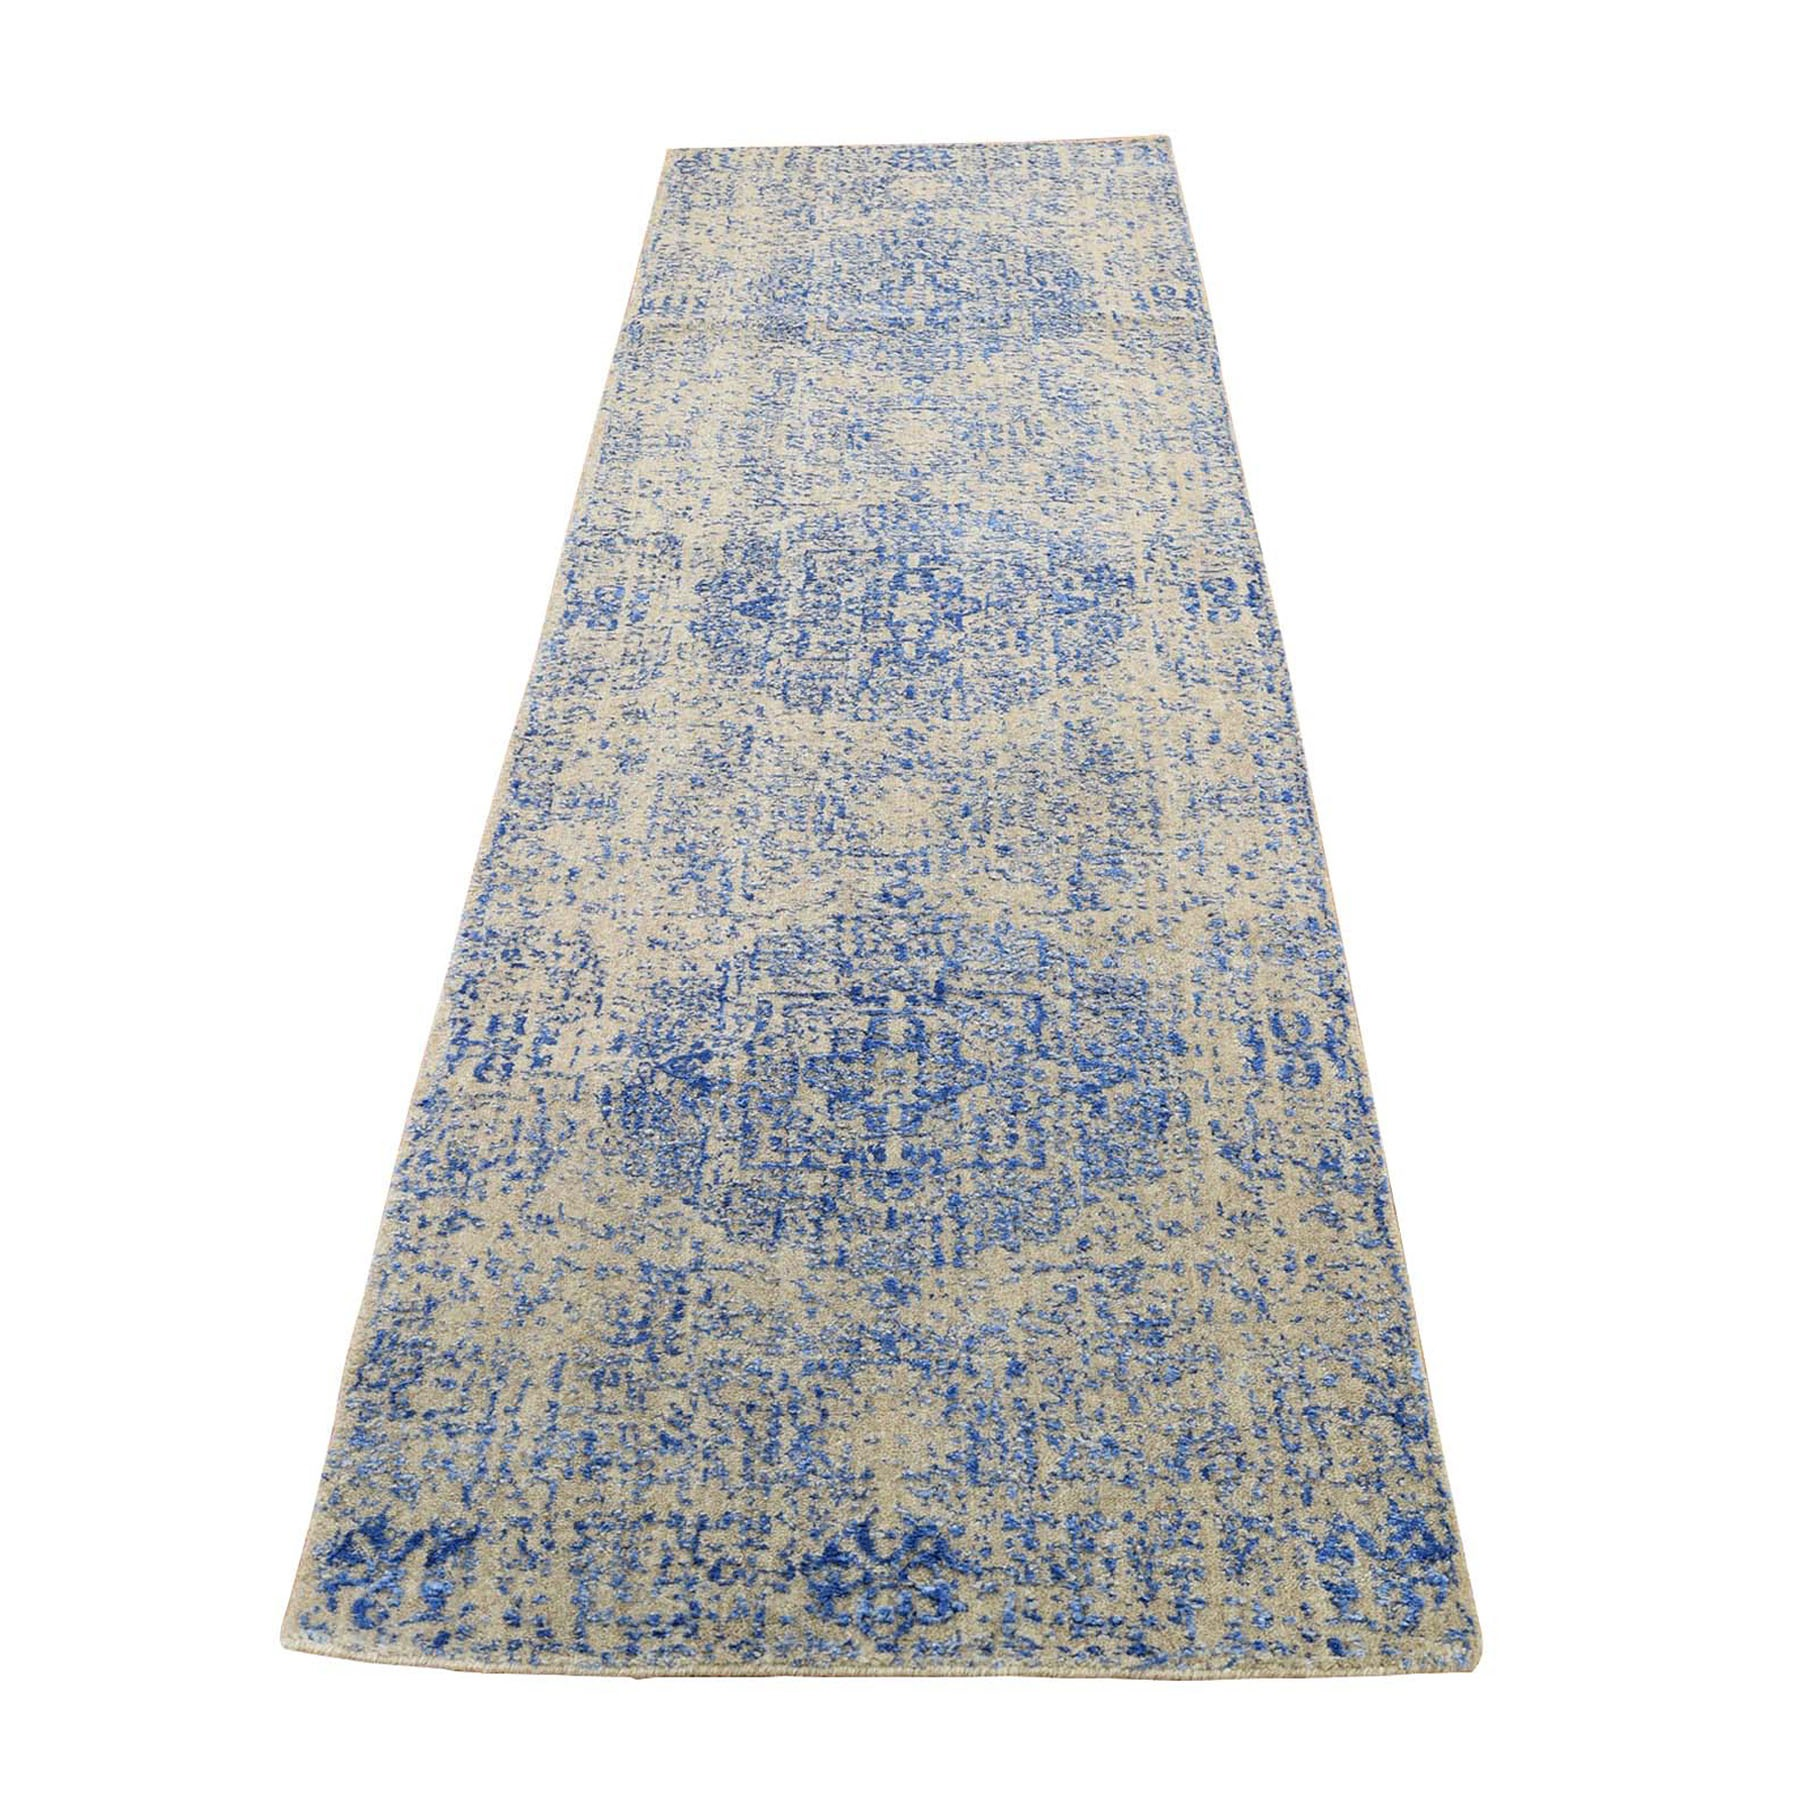 Intricate Collection Hand Loomed Blue Rug No: 0198226